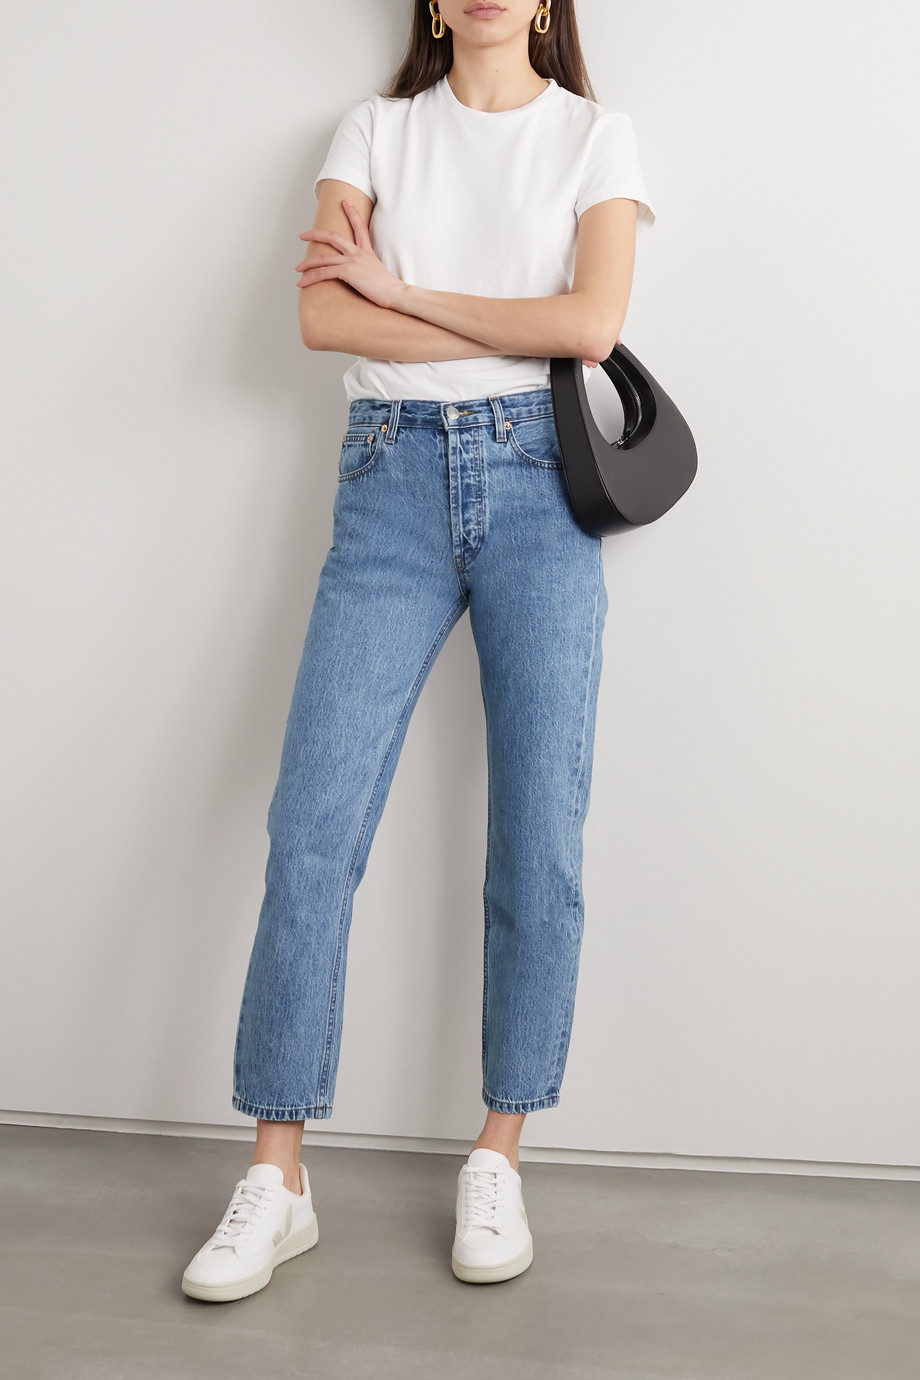 Still Here Tate Crop painted high-rise straight-leg jeans